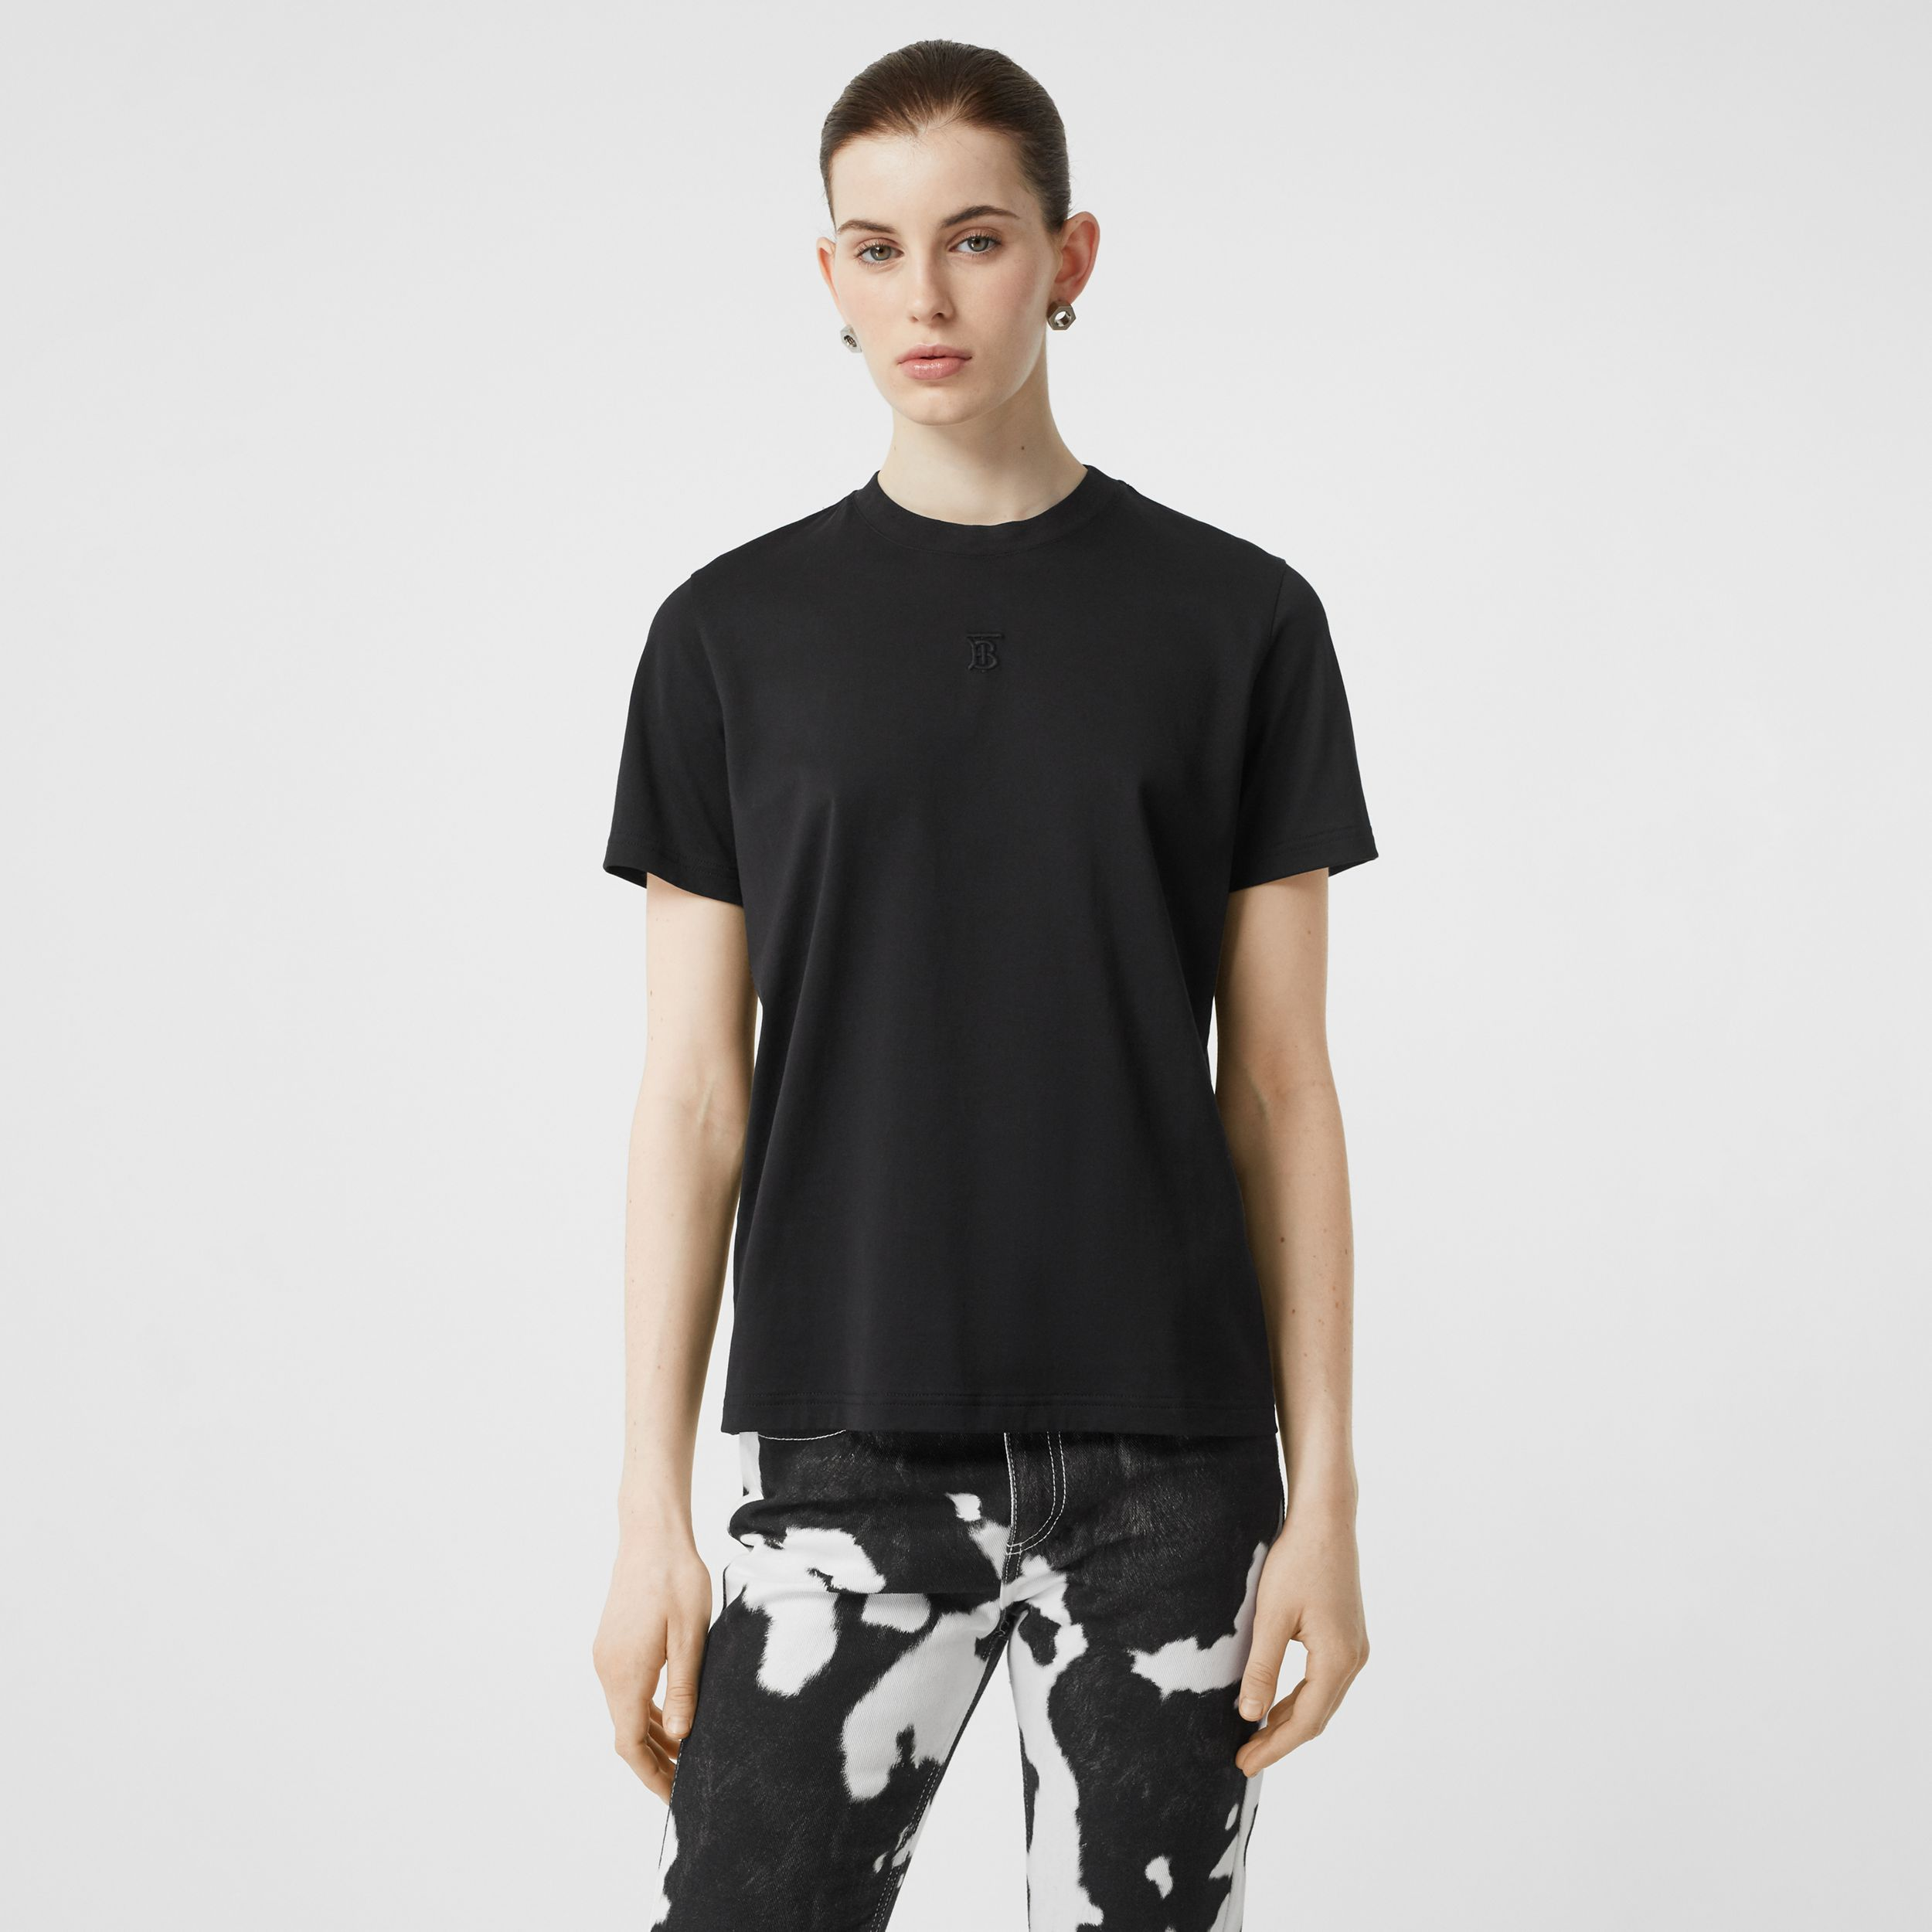 Monogram Motif Cotton T-shirt in Black - Women | Burberry - 1